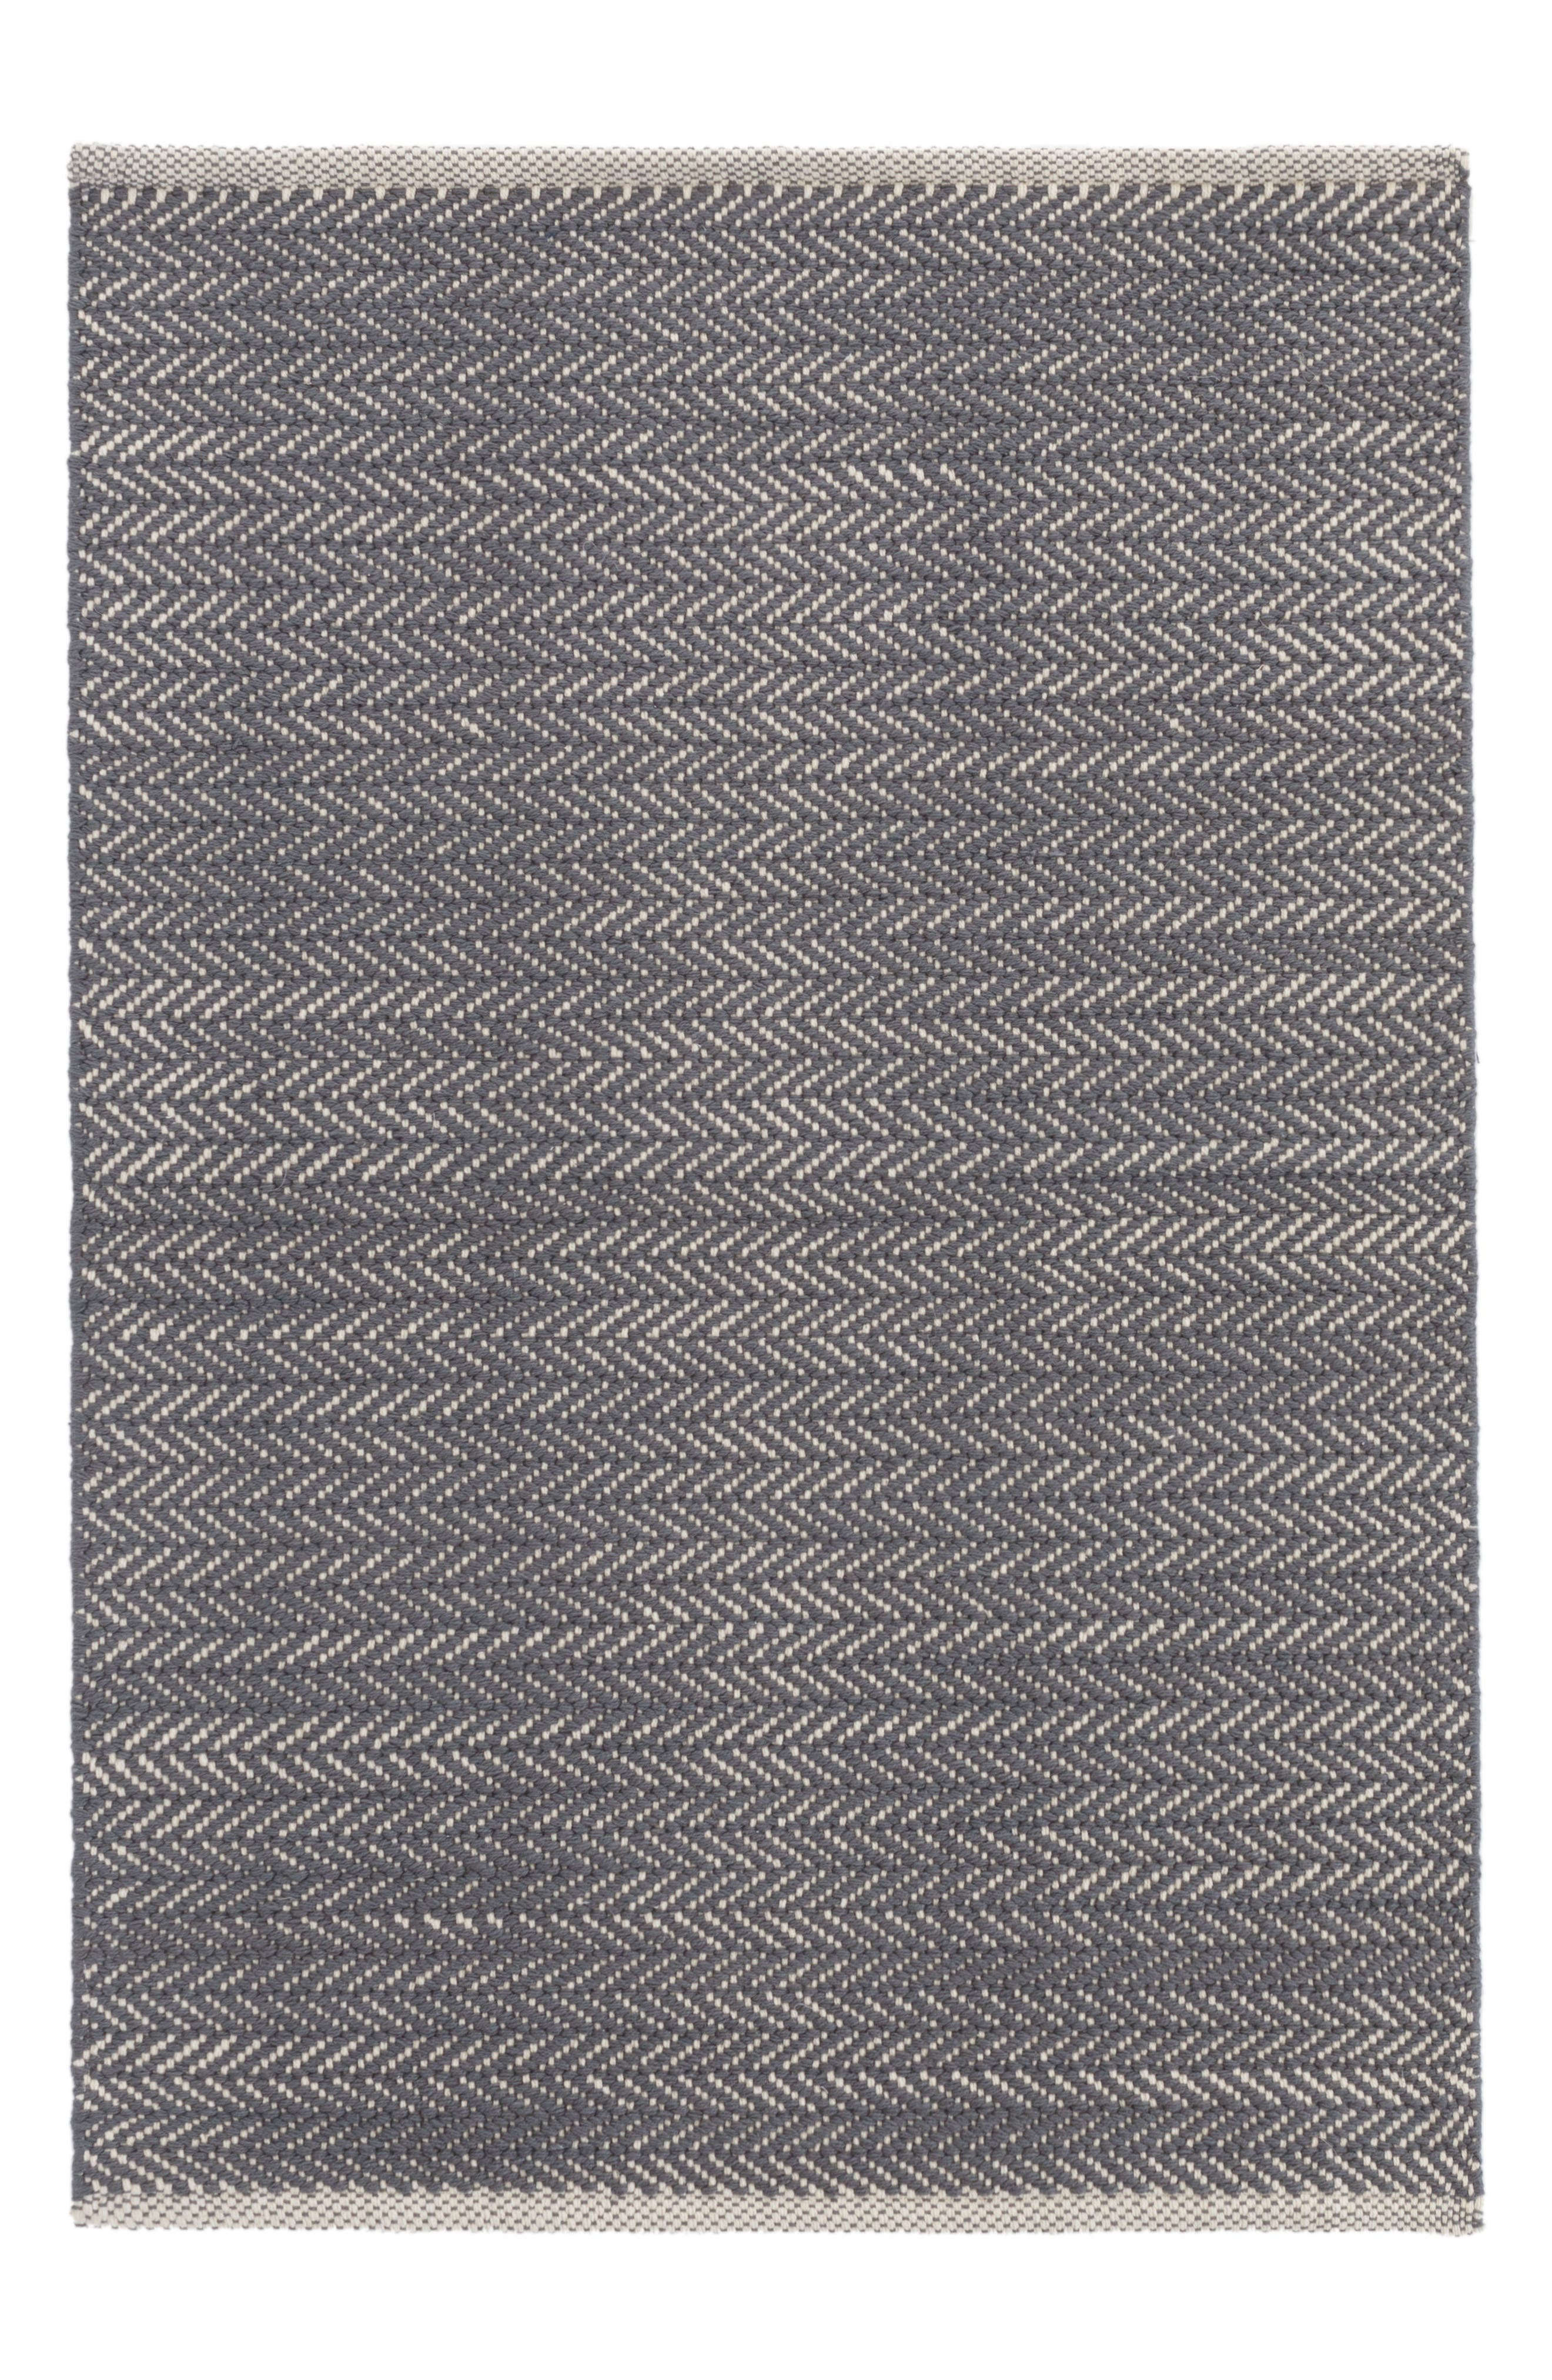 Herringbone Rug,                         Main,                         color, Blue